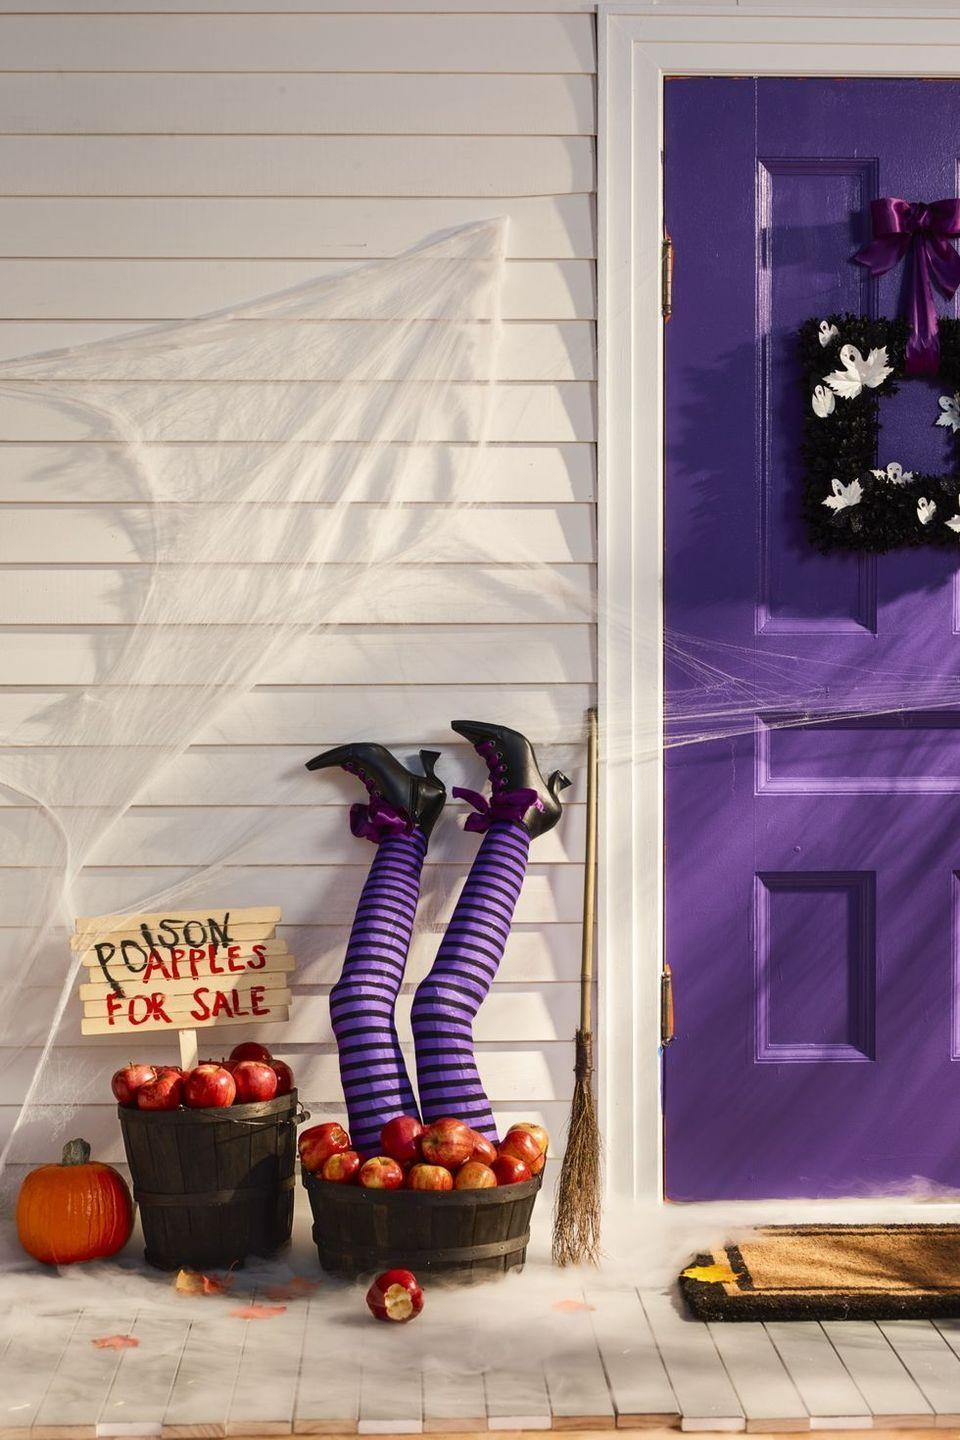 """<p>Fill a few wooden crates with poison apples (don't forget the witch legs) and wait for visitors to be scared out of their minds.</p><p><a class=""""link rapid-noclick-resp"""" href=""""https://www.amazon.com/Kamonda-Halloween-Upside-Decoration-Ornament/dp/B09CY99TFR/?tag=syn-yahoo-20&ascsubtag=%5Bartid%7C10055.g.4602%5Bsrc%7Cyahoo-us"""" rel=""""nofollow noopener"""" target=""""_blank"""" data-ylk=""""slk:SHOP WITCH LEGS"""">SHOP WITCH LEGS</a></p>"""